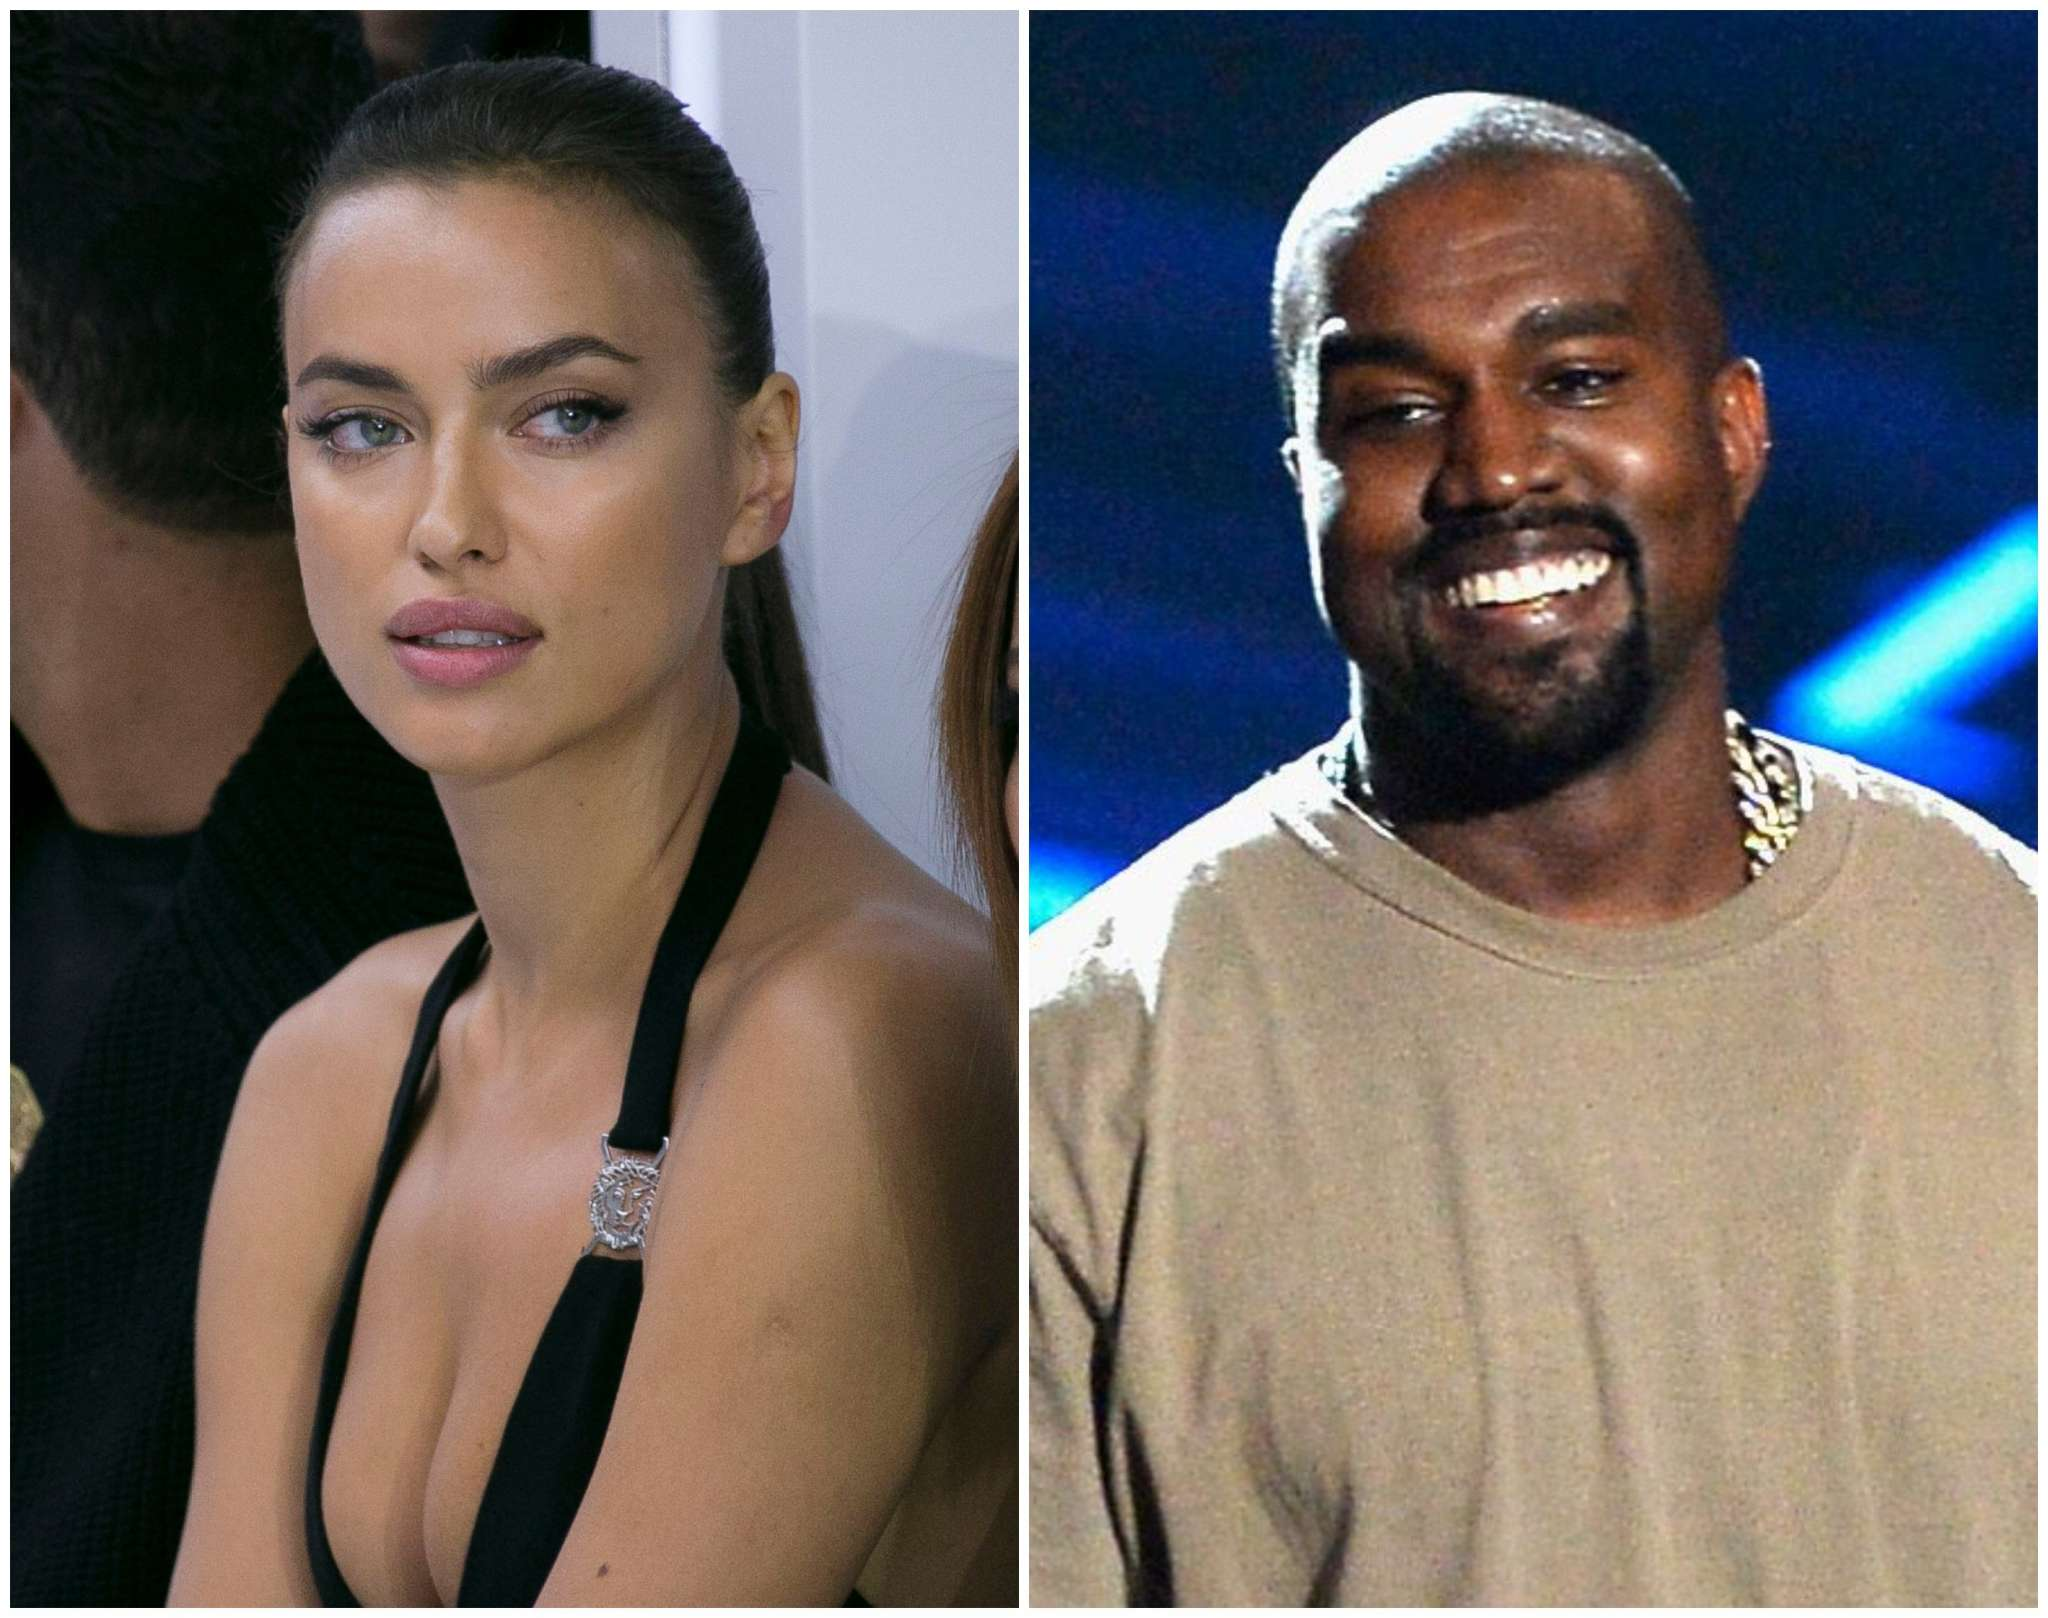 kanye-west-and-irina-shayk-reportedly-still-dating-in-spite-of-previous-reports-claiming-they-were-over-quickly